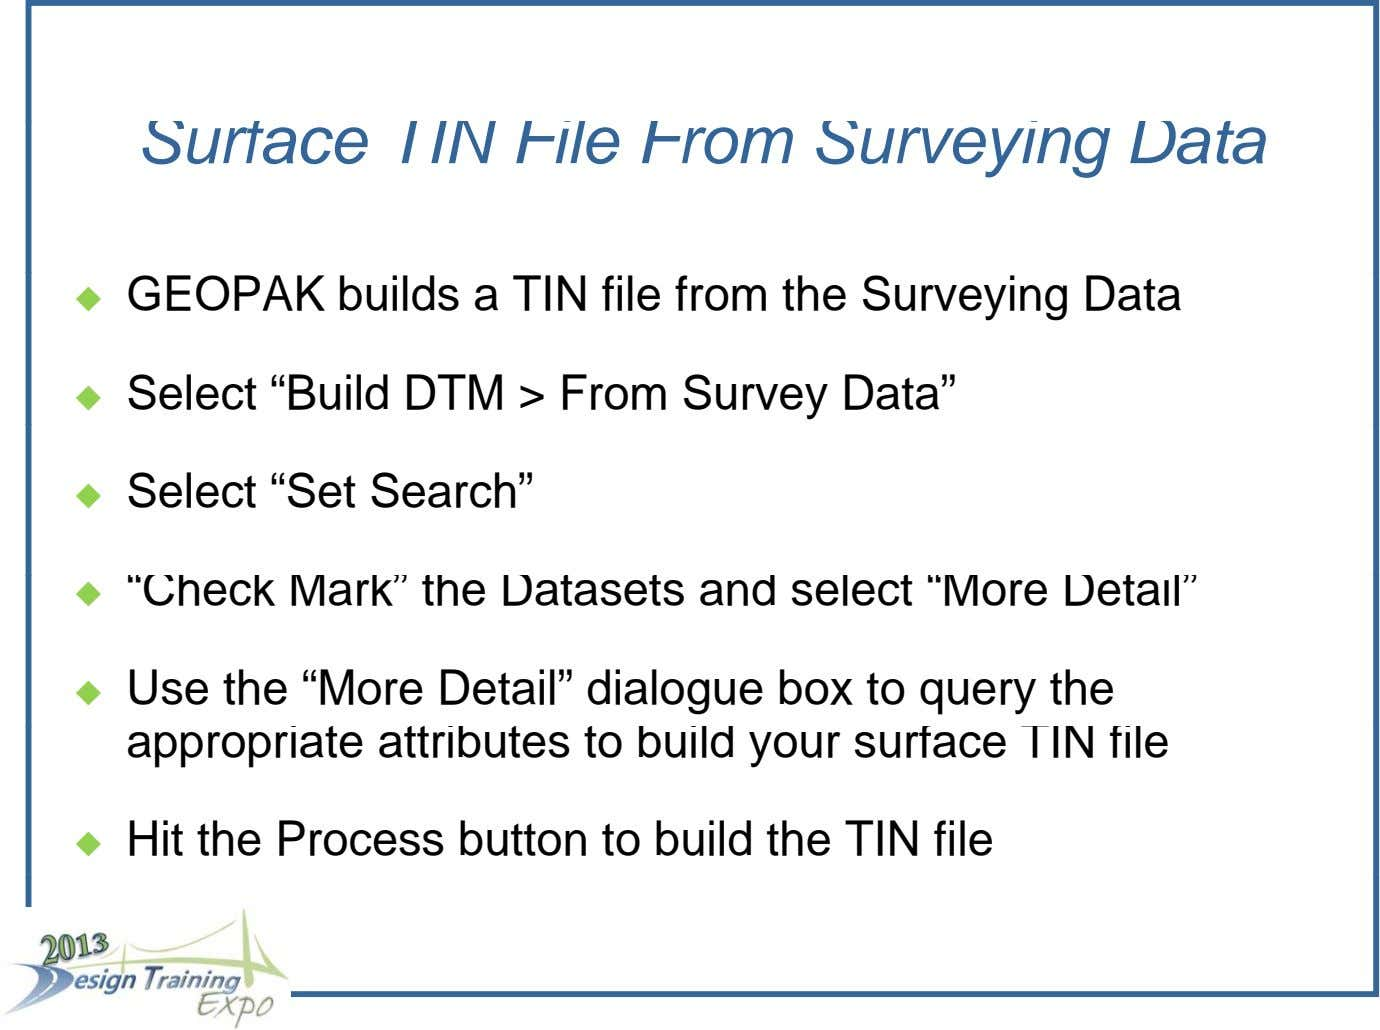 Surface TIN File From Surveying Data GEOPAK builds a TIN file from the Surveying Data 